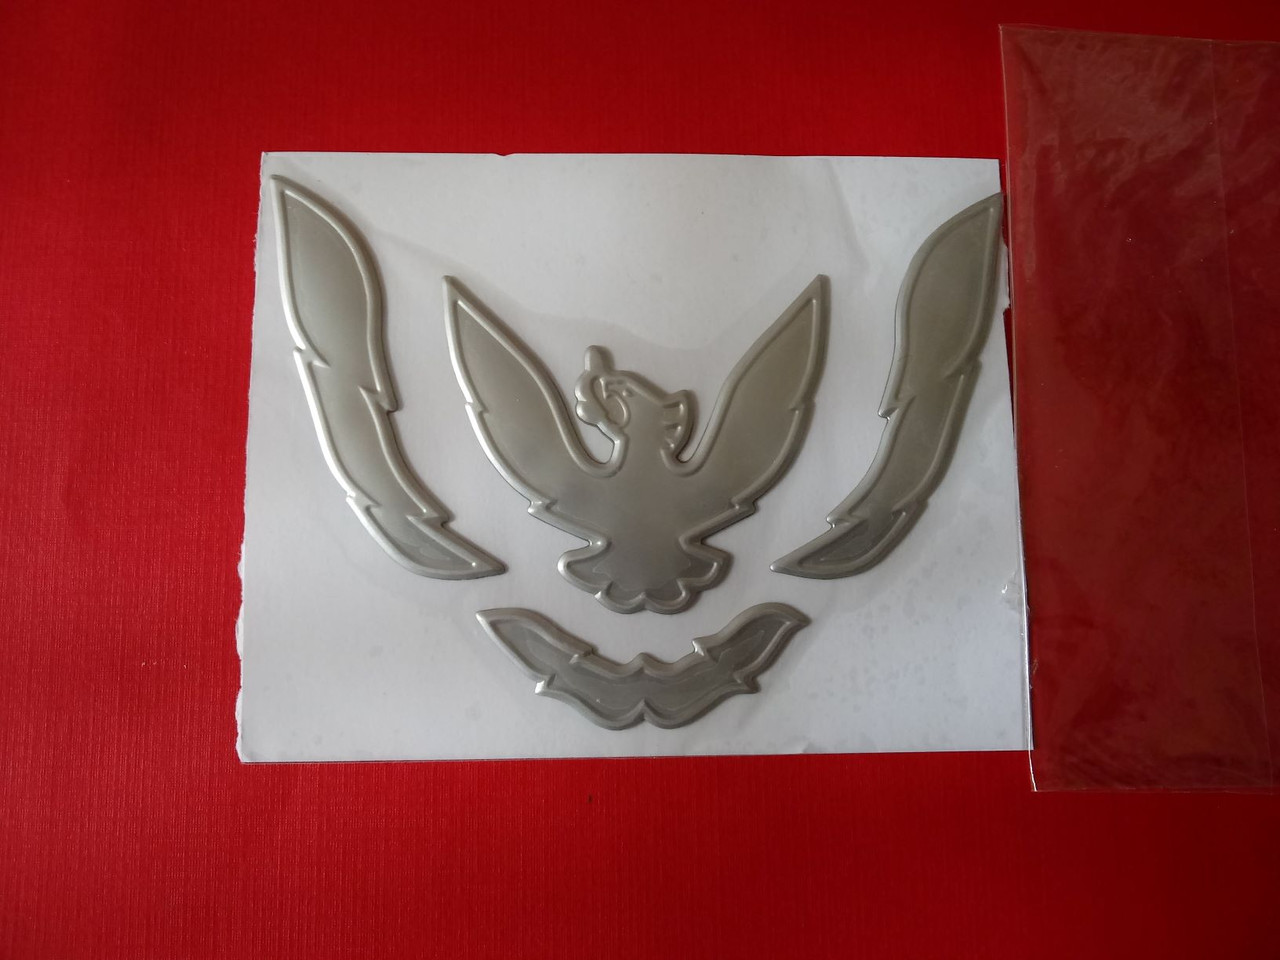 New 1993-1994-1995-1996-1997 Pontiac Firebird Bumper Emblem-Badge-Silver New 1993-1994-1995-1996-1997  Pontiac Trans Am Bumper Emblem-Badge-Silver New 1993-1994-1995-1996-1997  Pontiac Trans Am Nose Emblem-Badge-Silver New 1993-1994-1995-1996-1997 Pontiac Firebird Nose Emblem-Badge-Silver